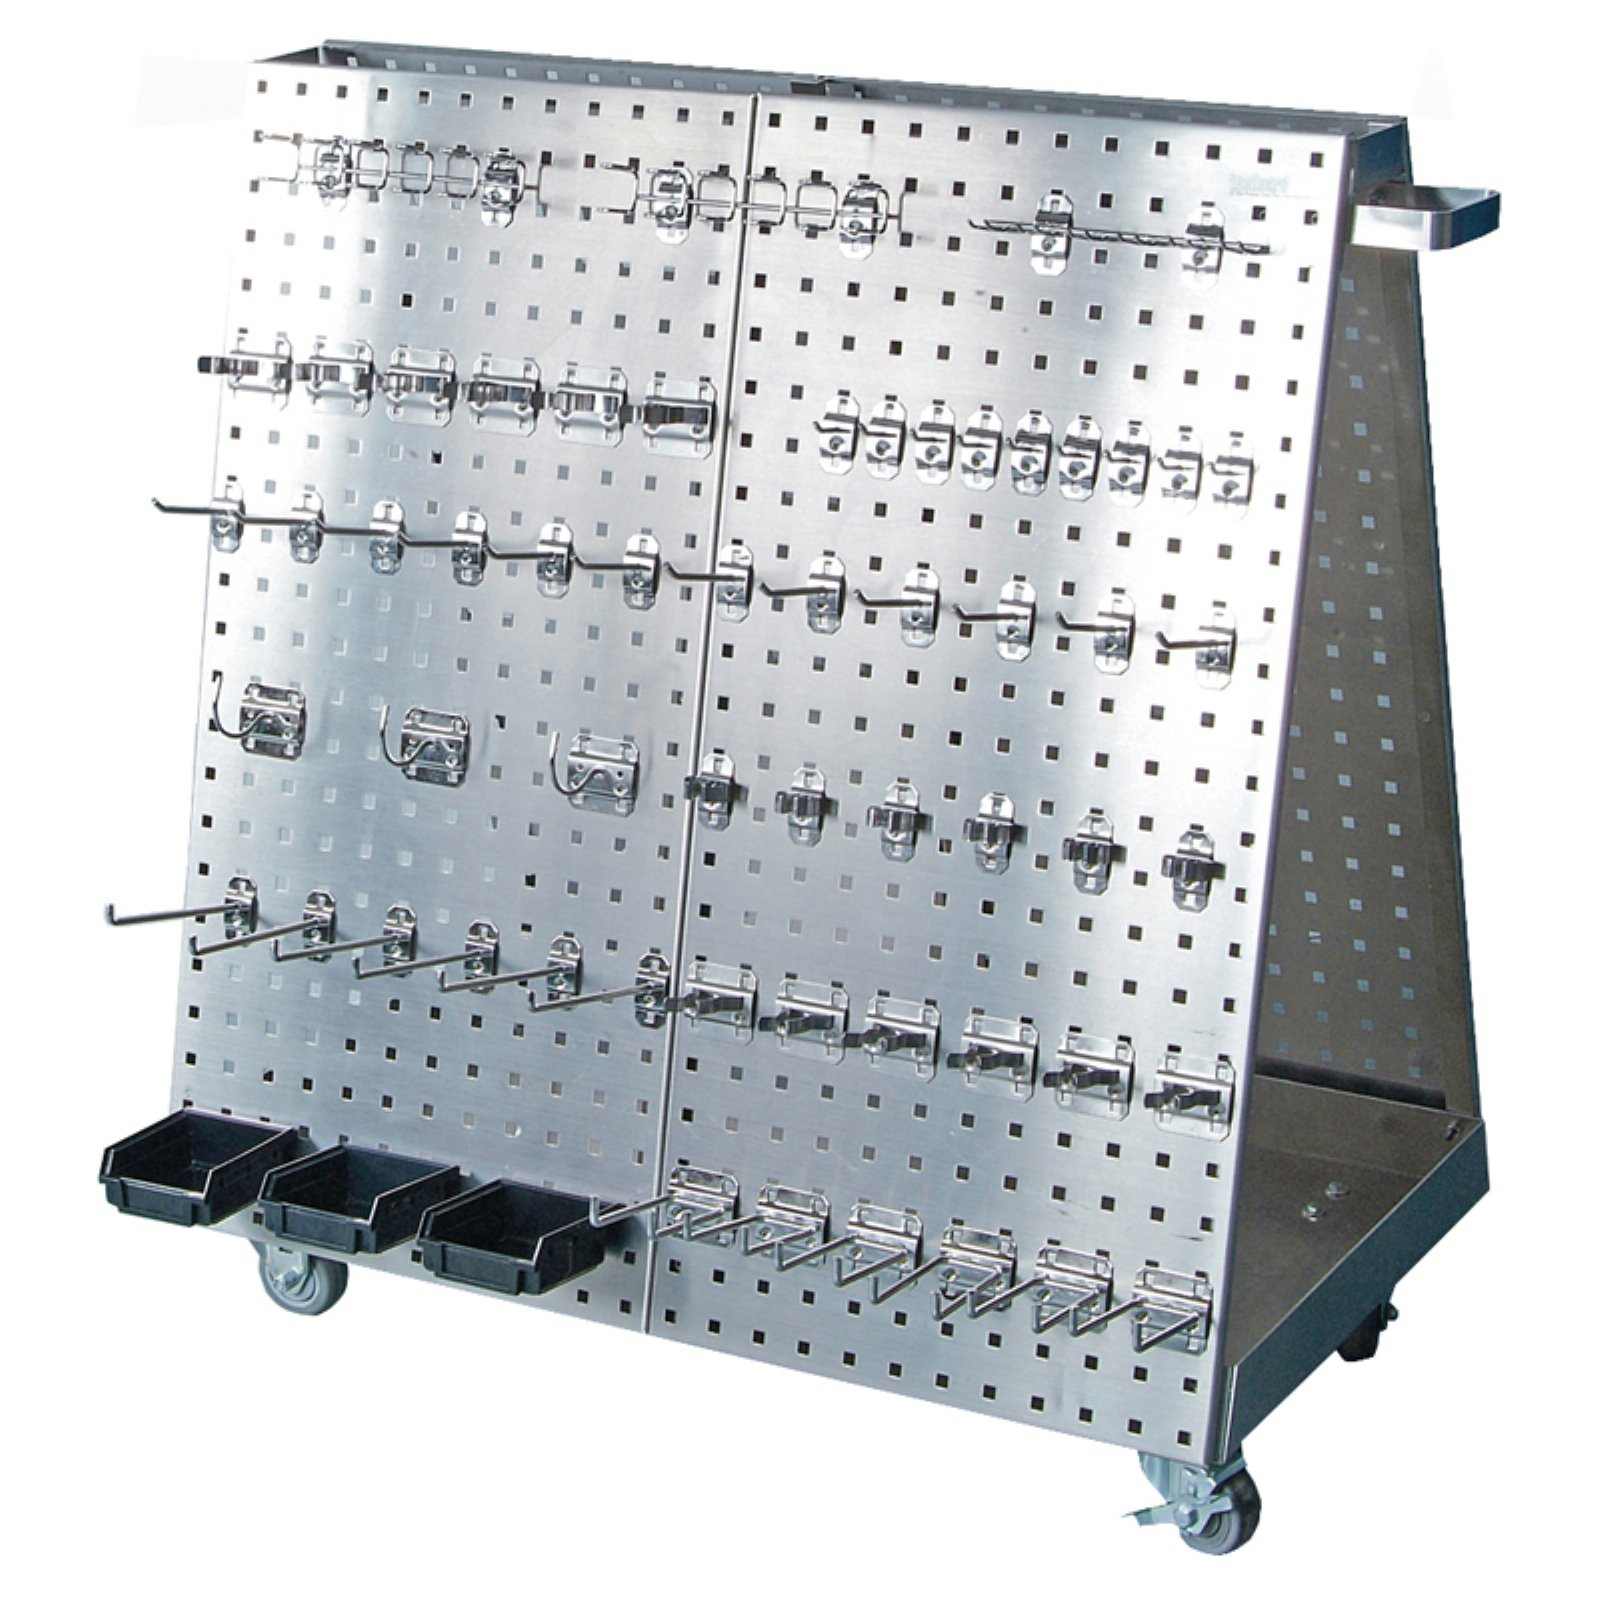 """Stainless Steel LocBoard 36-3/4""""L x 39-1/4""""H x 21-1/4""""W Anodized Aluminum Frame SS LocBoard Tool Cart with Tray, 60-Piece Stainless Steel LocHook Assortment & 3 Hanging Bins"""